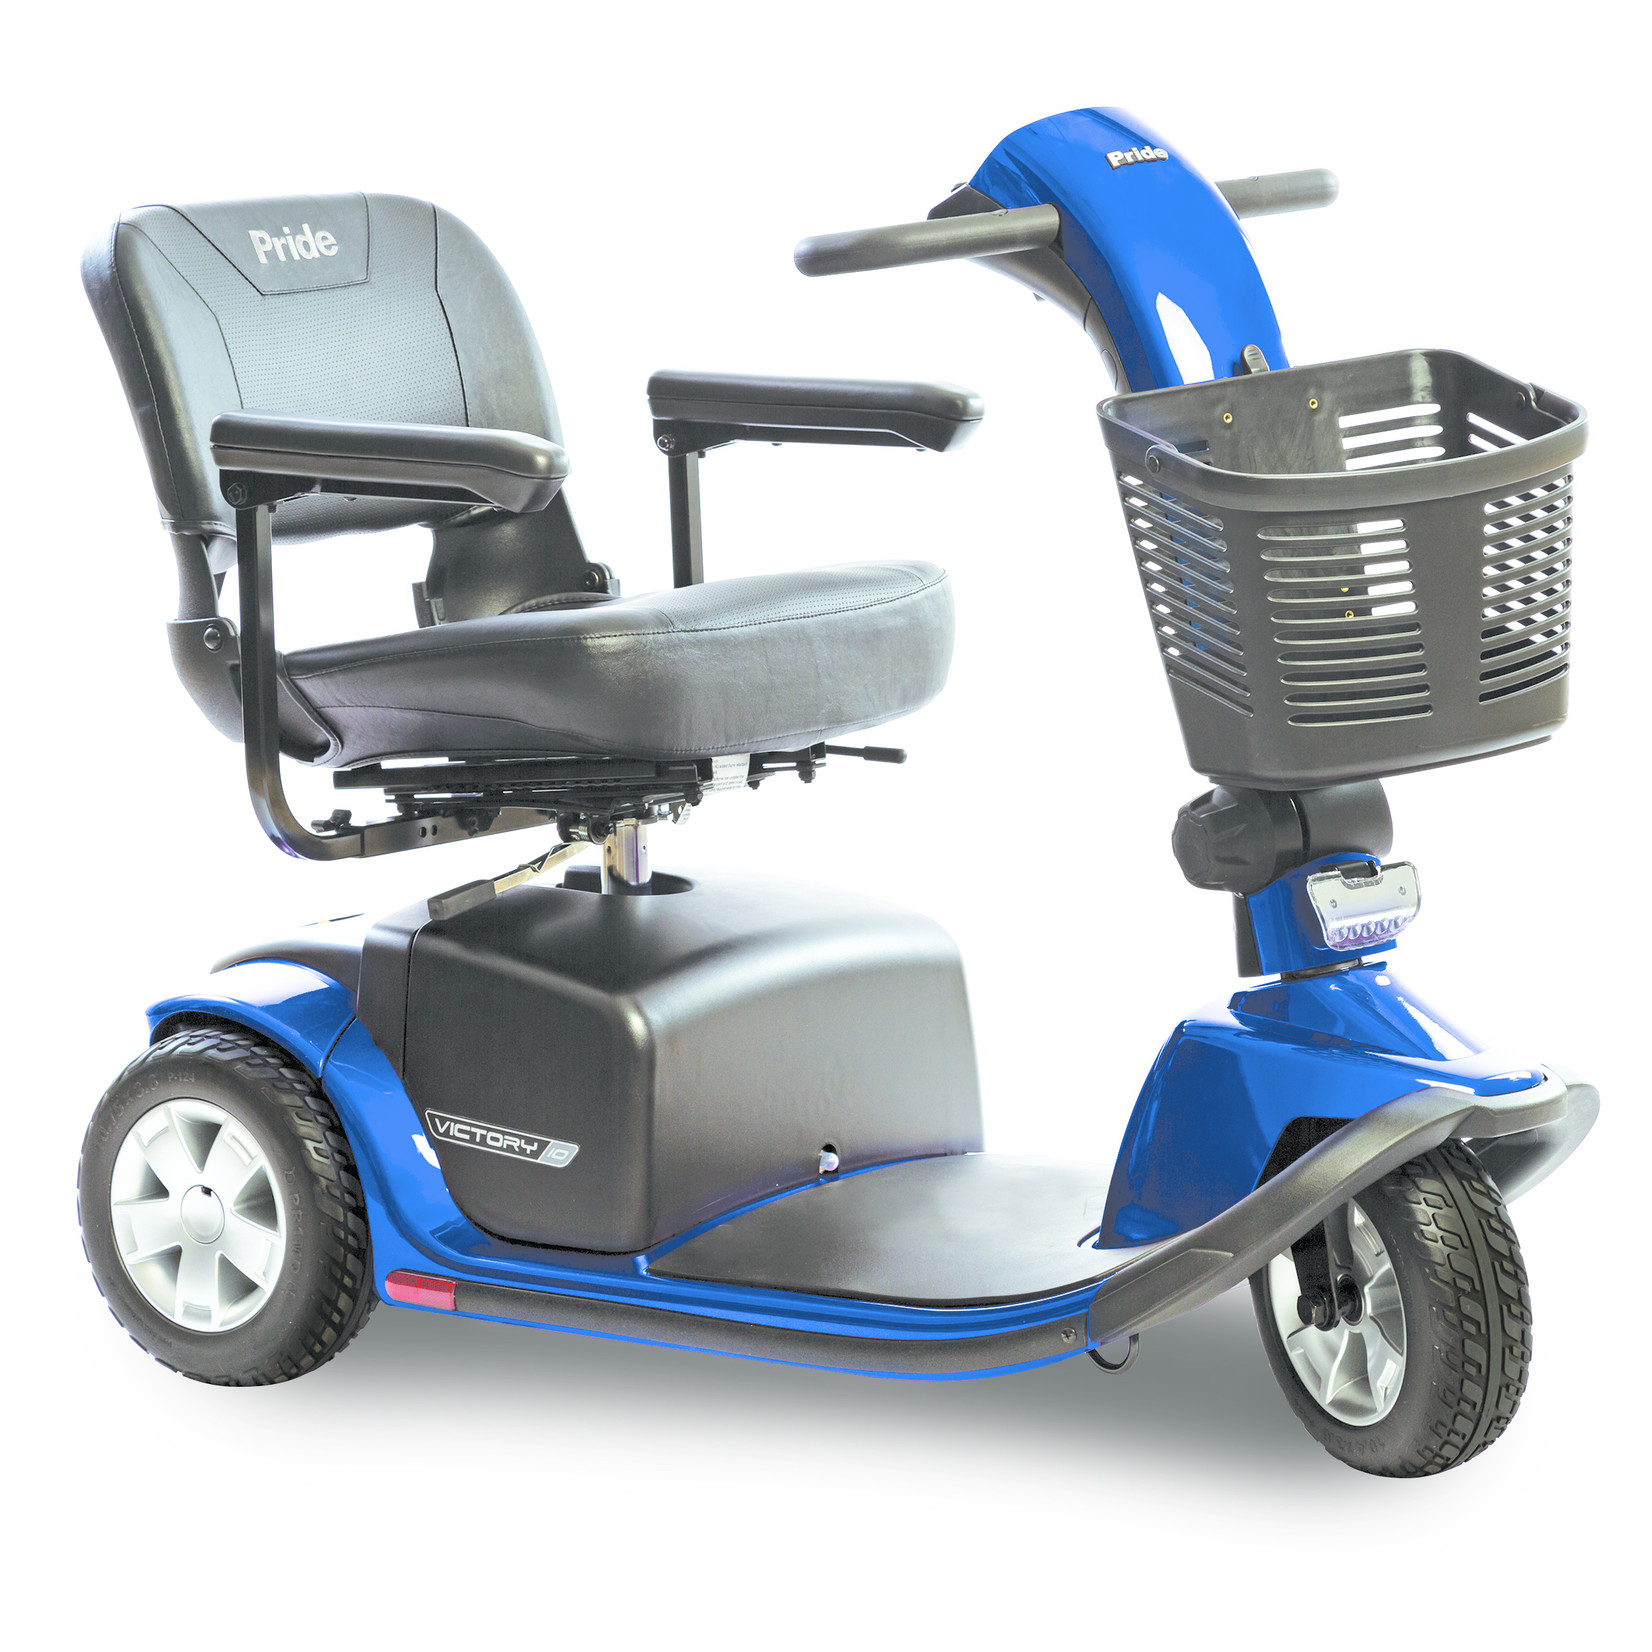 Pride Victory 10 3-Wheel Scooters